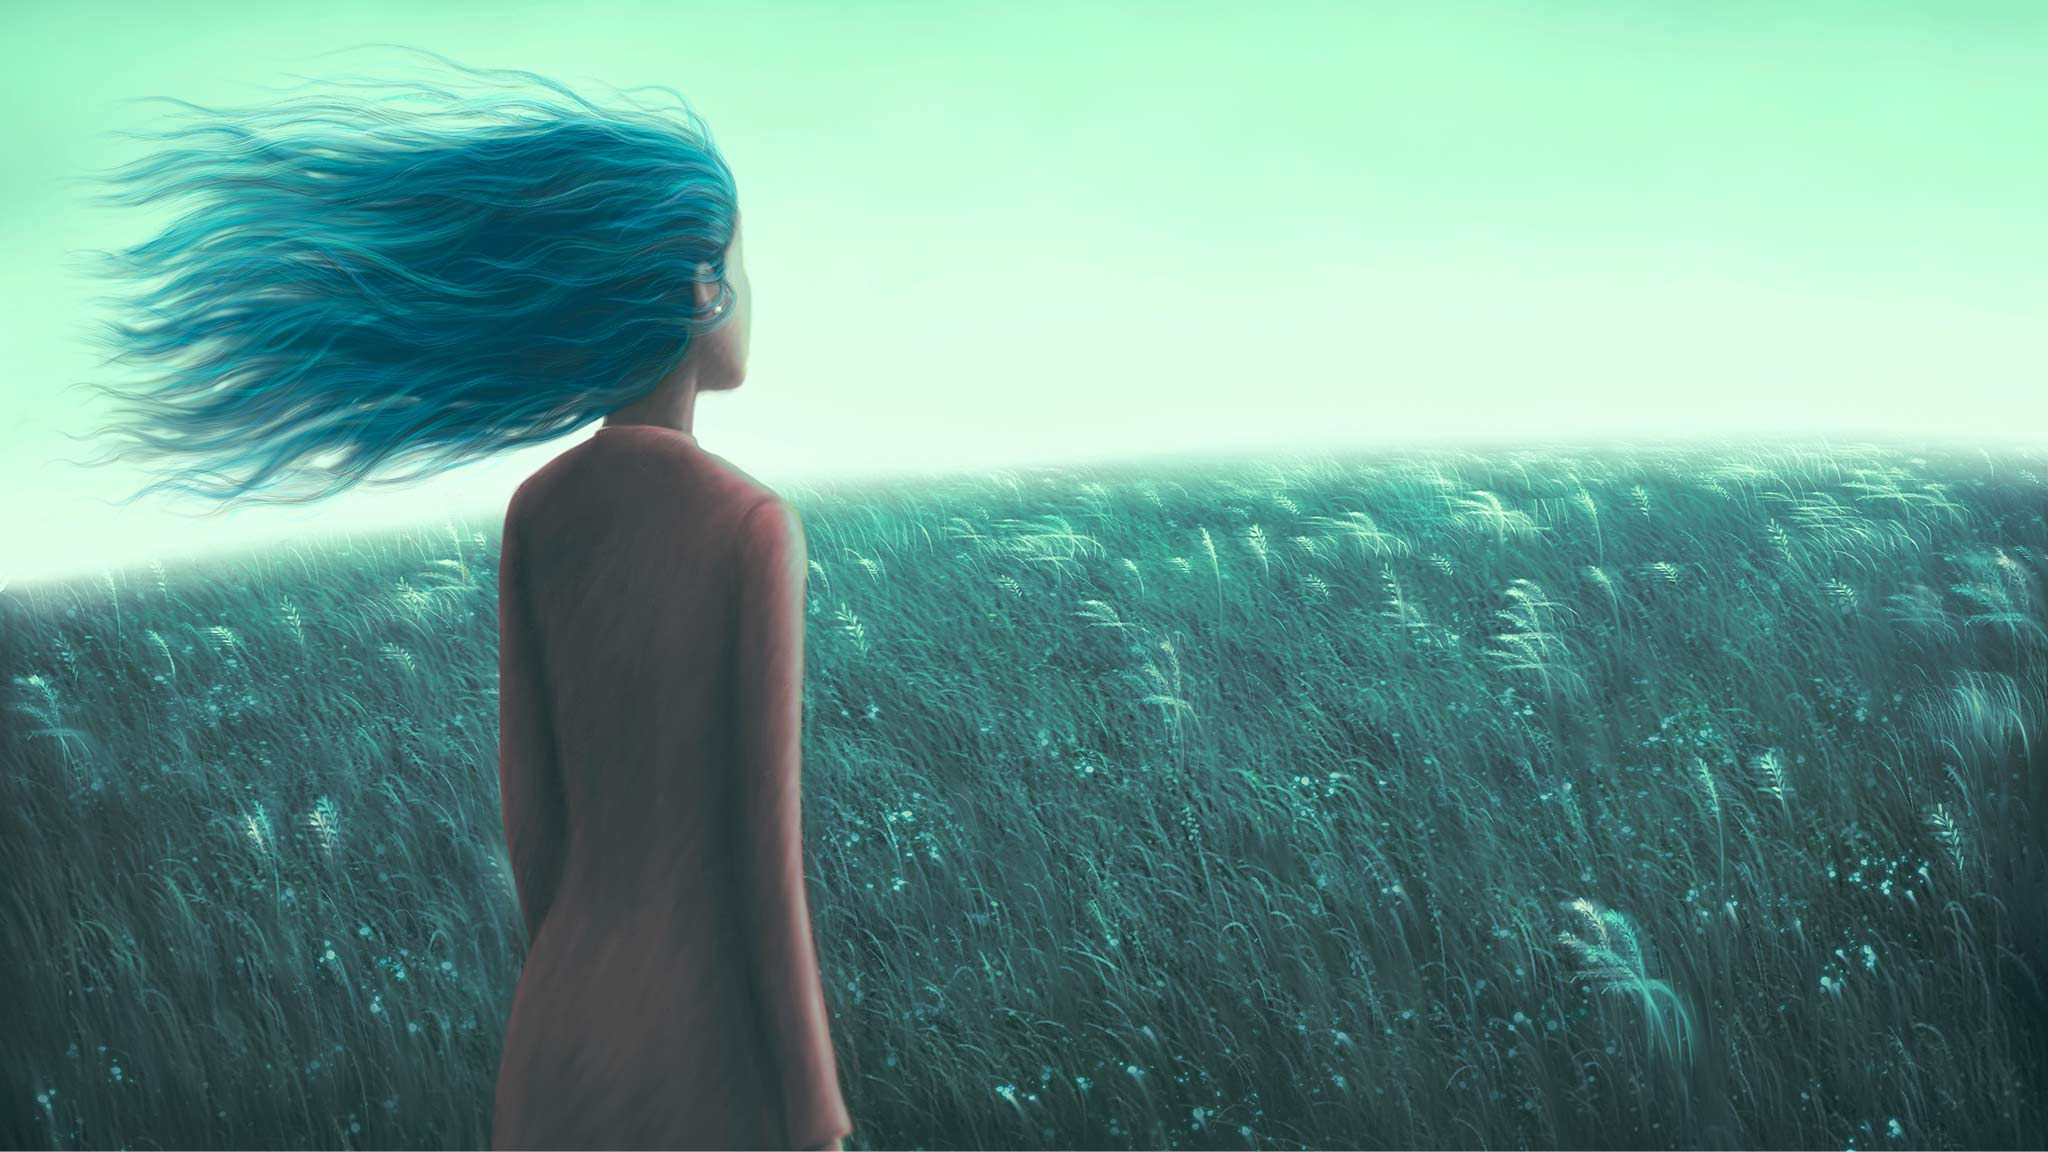 Digital Painting Of Young Woman Looking Across Grassy Field Toward Horizon, Hope Concept